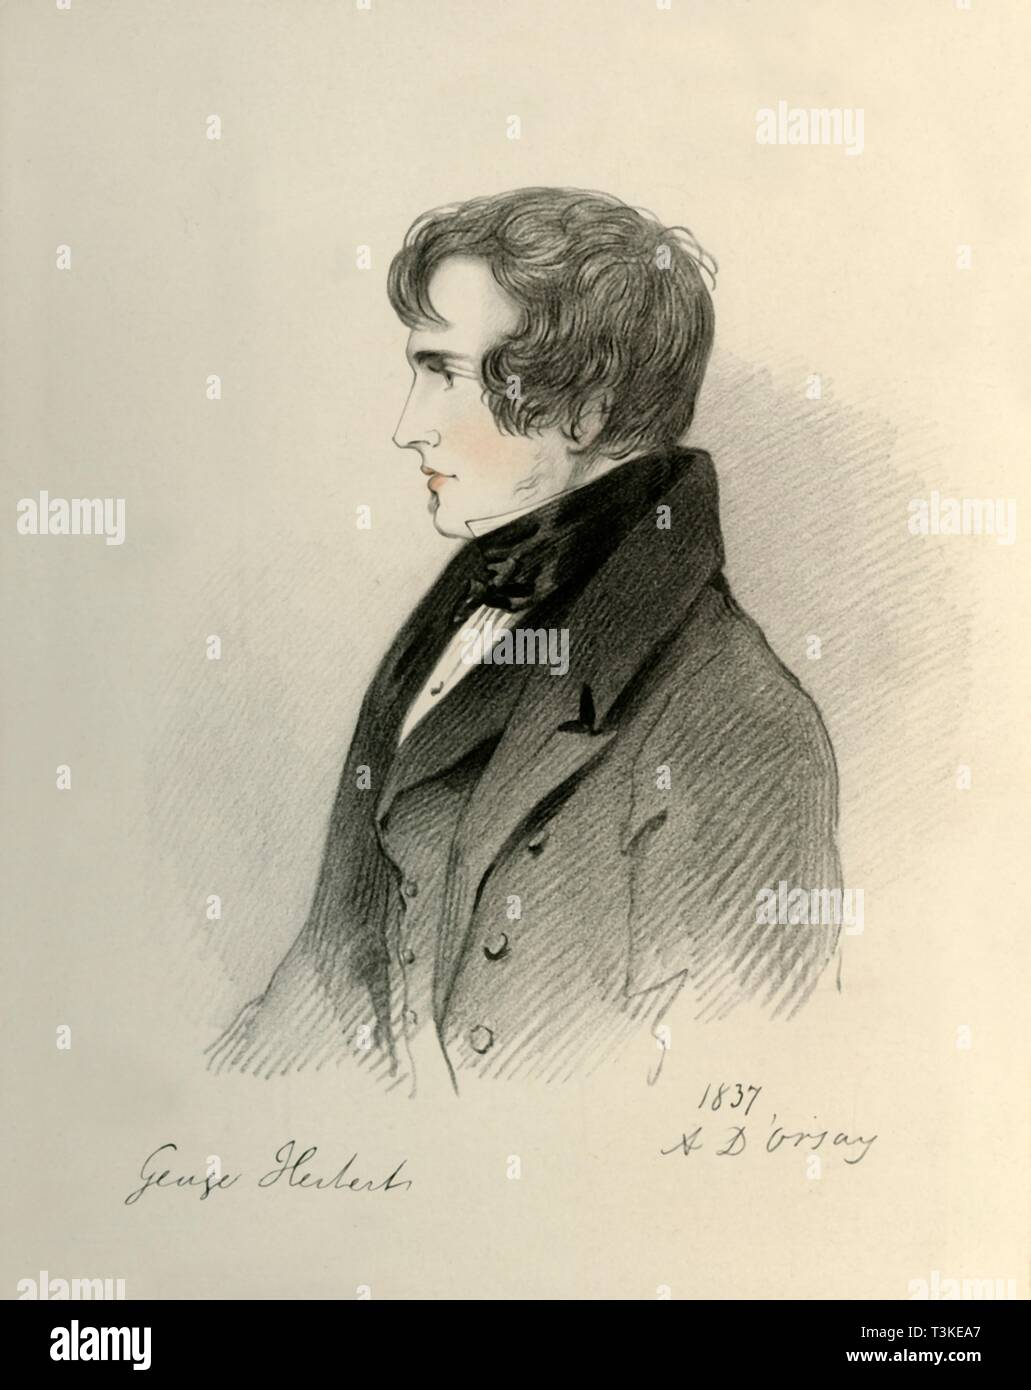 """'George Herbert Esquire', 1837. Portrait of British soldier George Herbert (1812-1838), grandson of the 1st Earl of Carnarvon. From """"Portraits by Count D'Orsay"""", an album assembled by Lady Georgiana Codrington. [1850s] - Stock Image"""